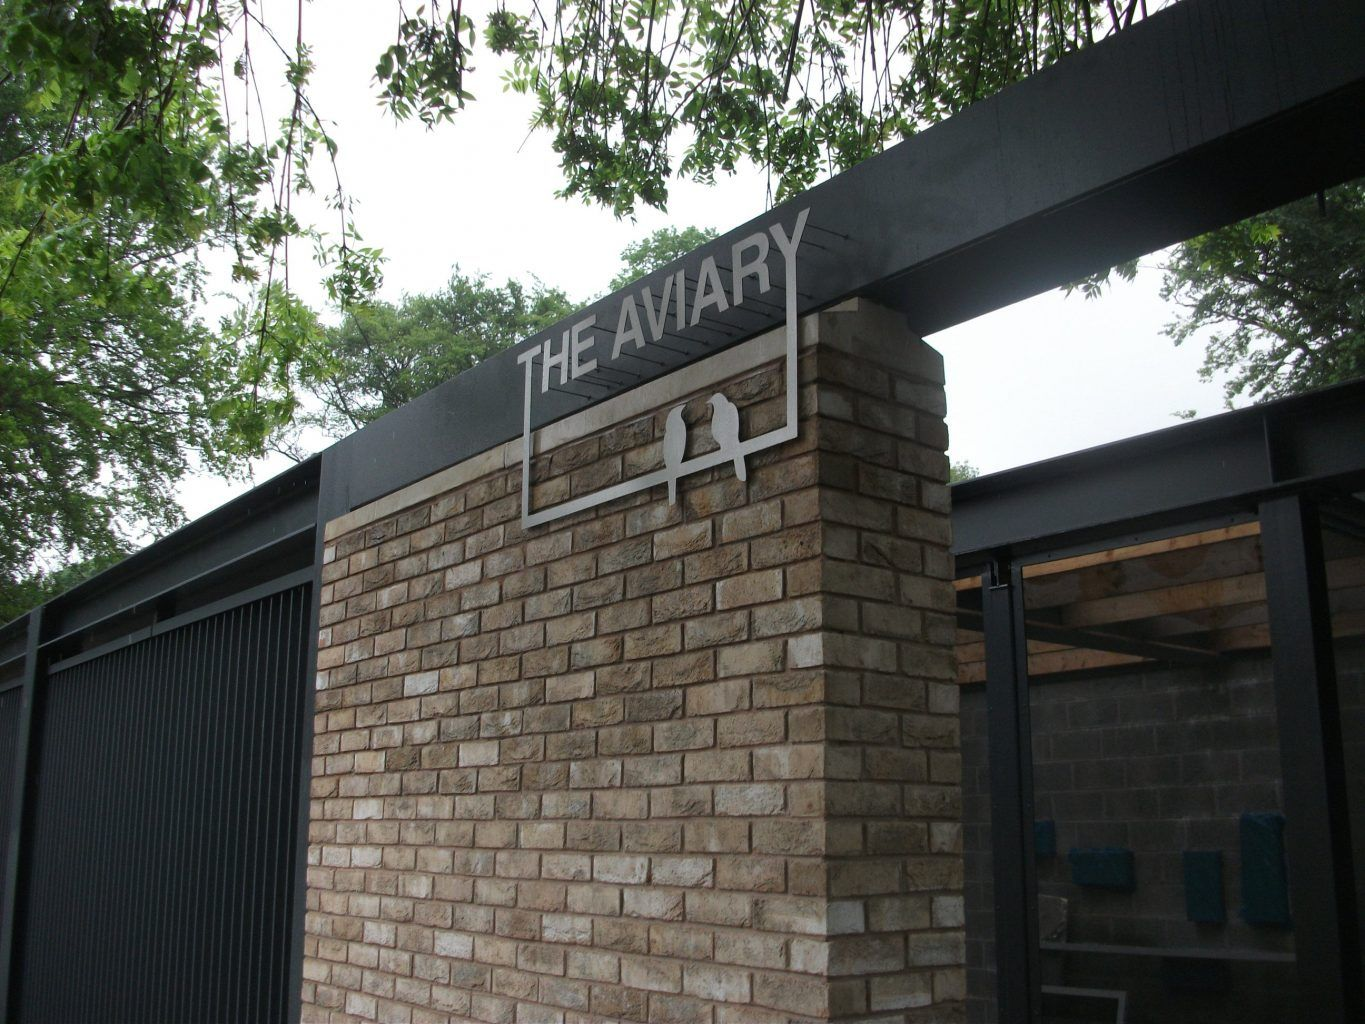 THE AVERY FLAT CUT STAINLESS STEEL LETTERS